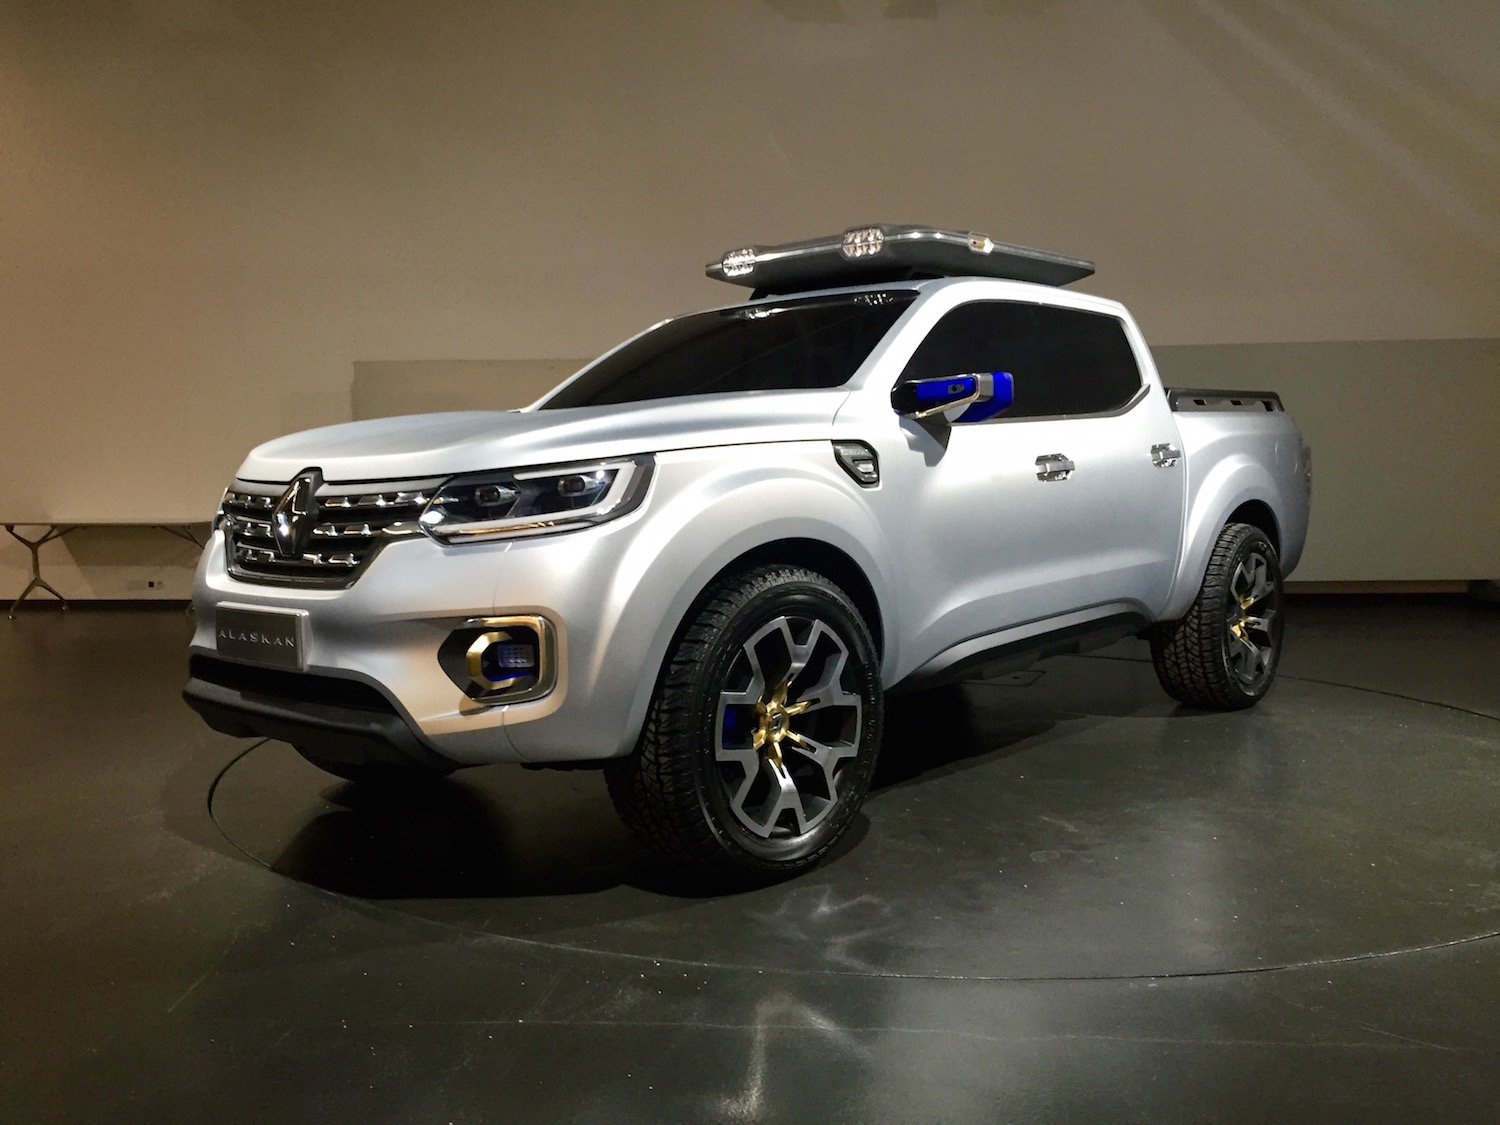 Renault Alaskan ute: Up close and personal with the French ...